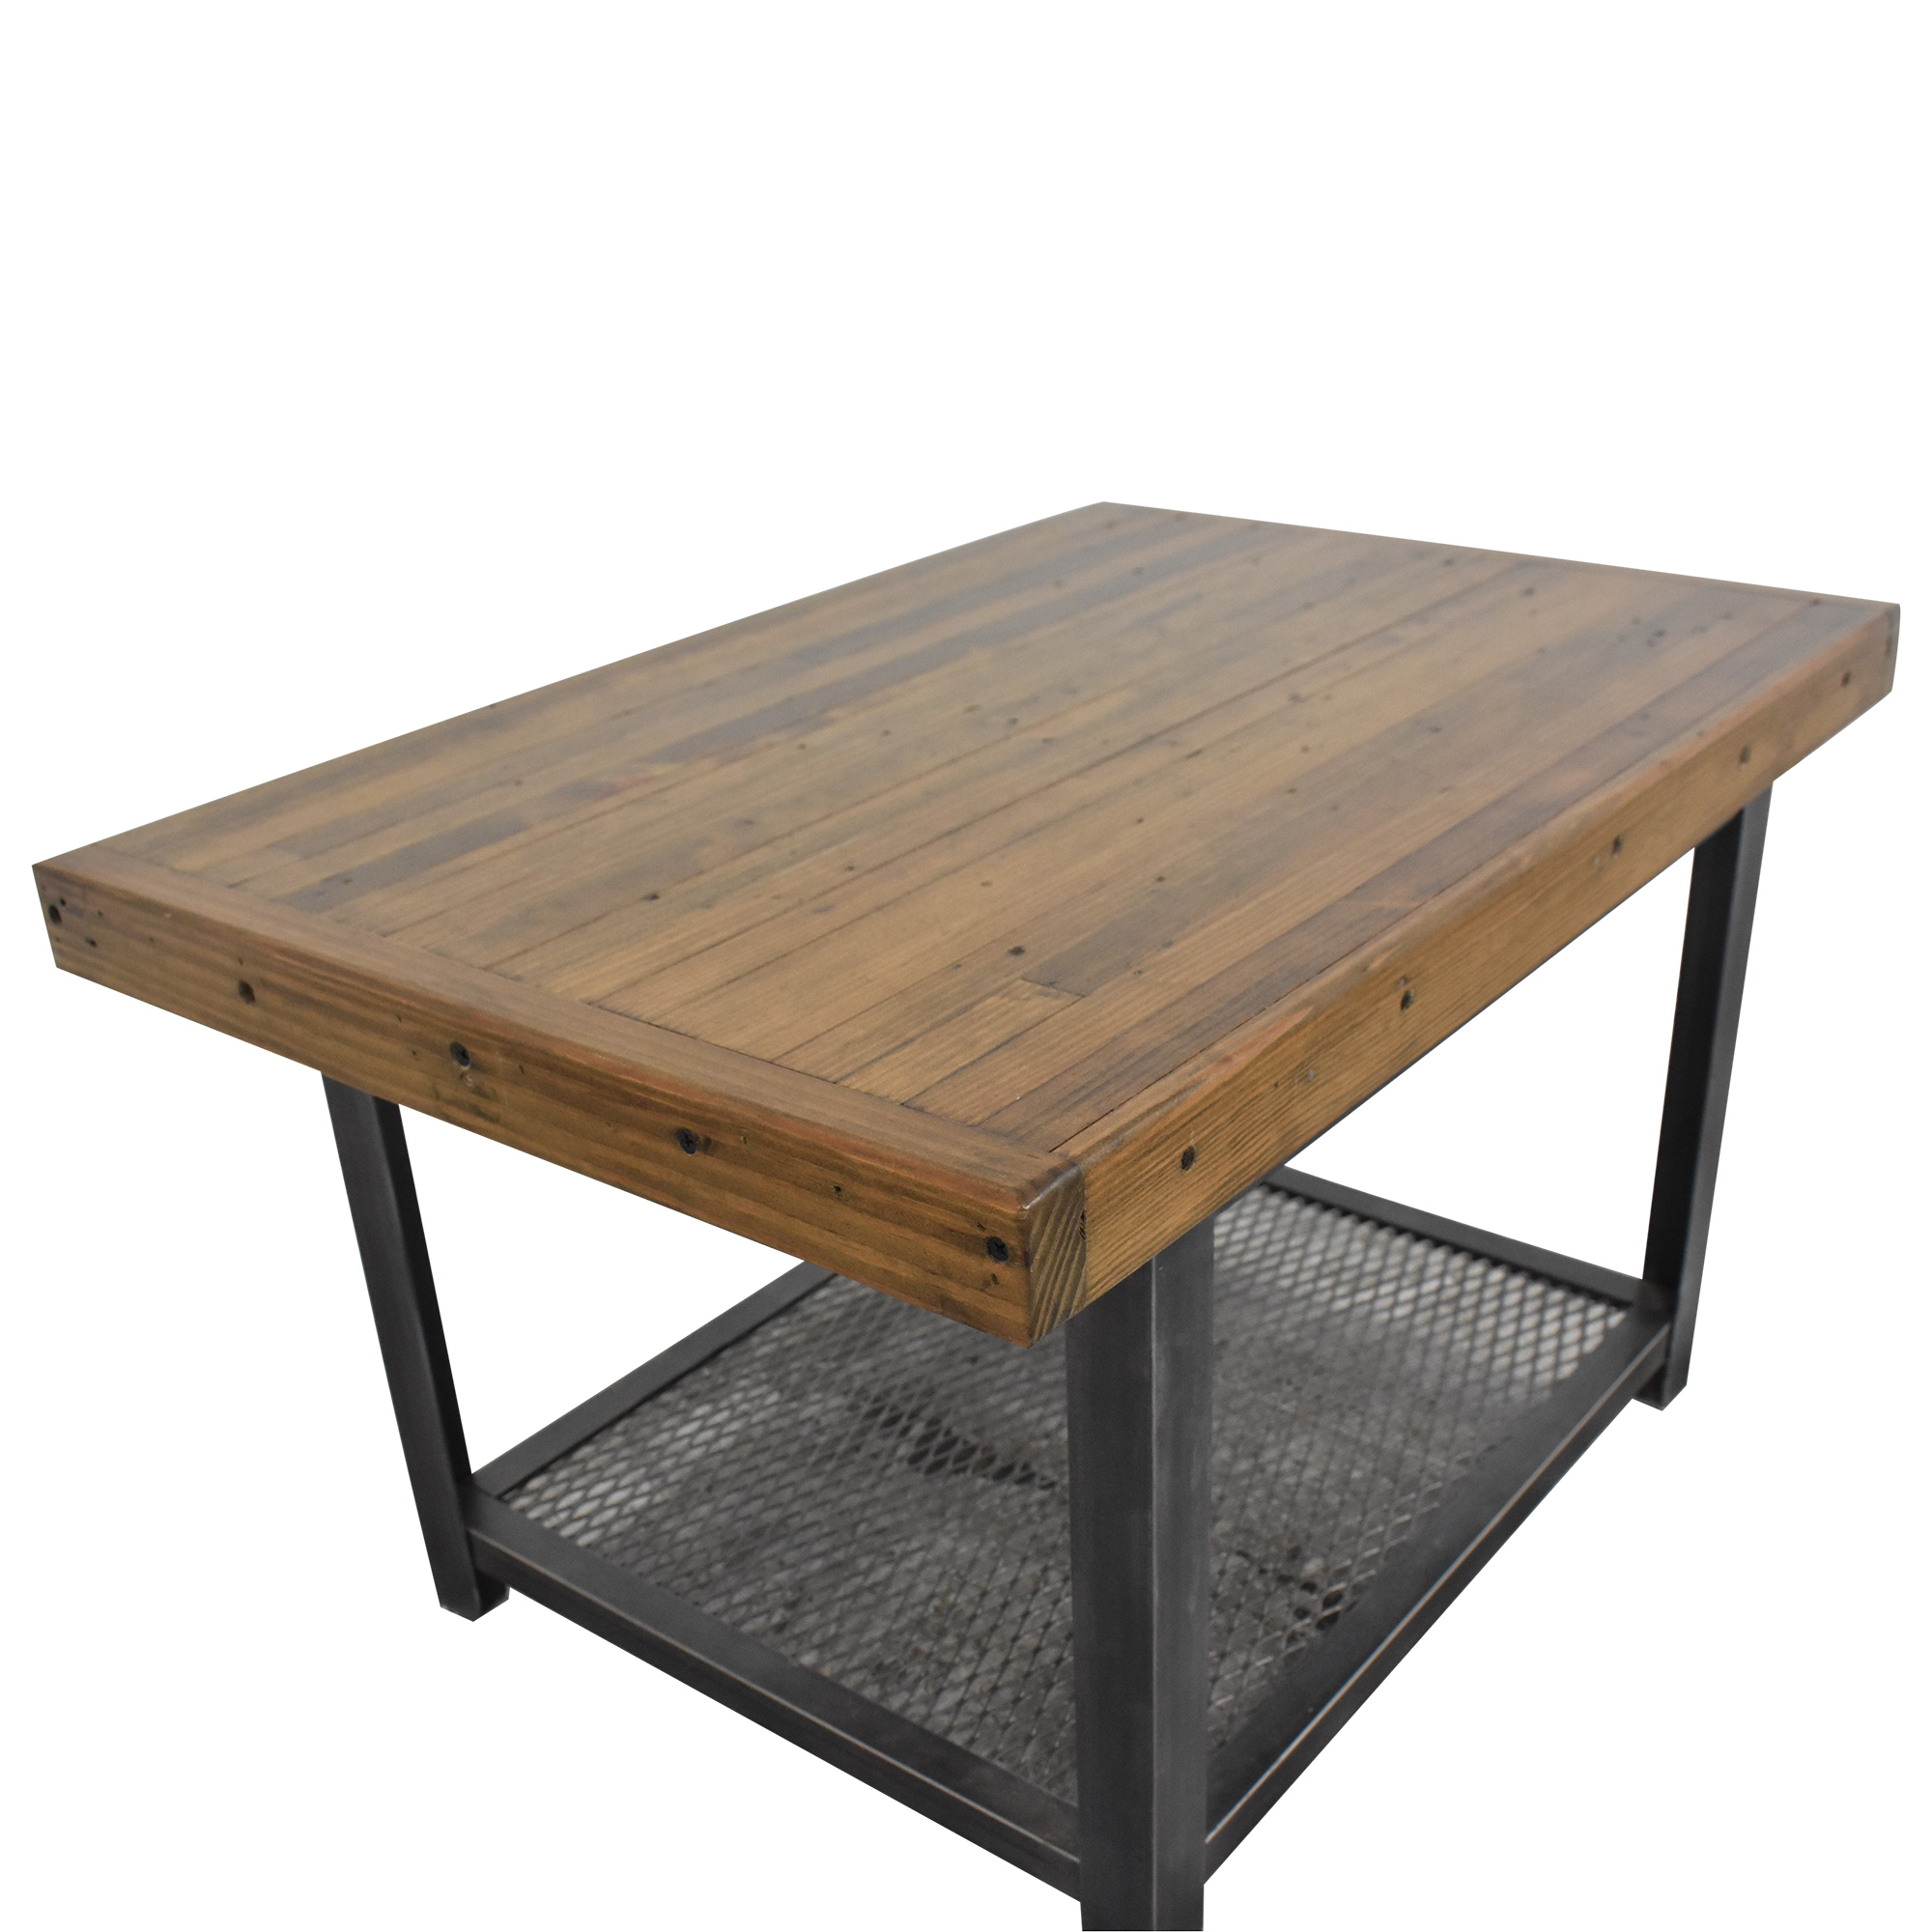 58 off brooklyn reclaimed industrial coffee table tables